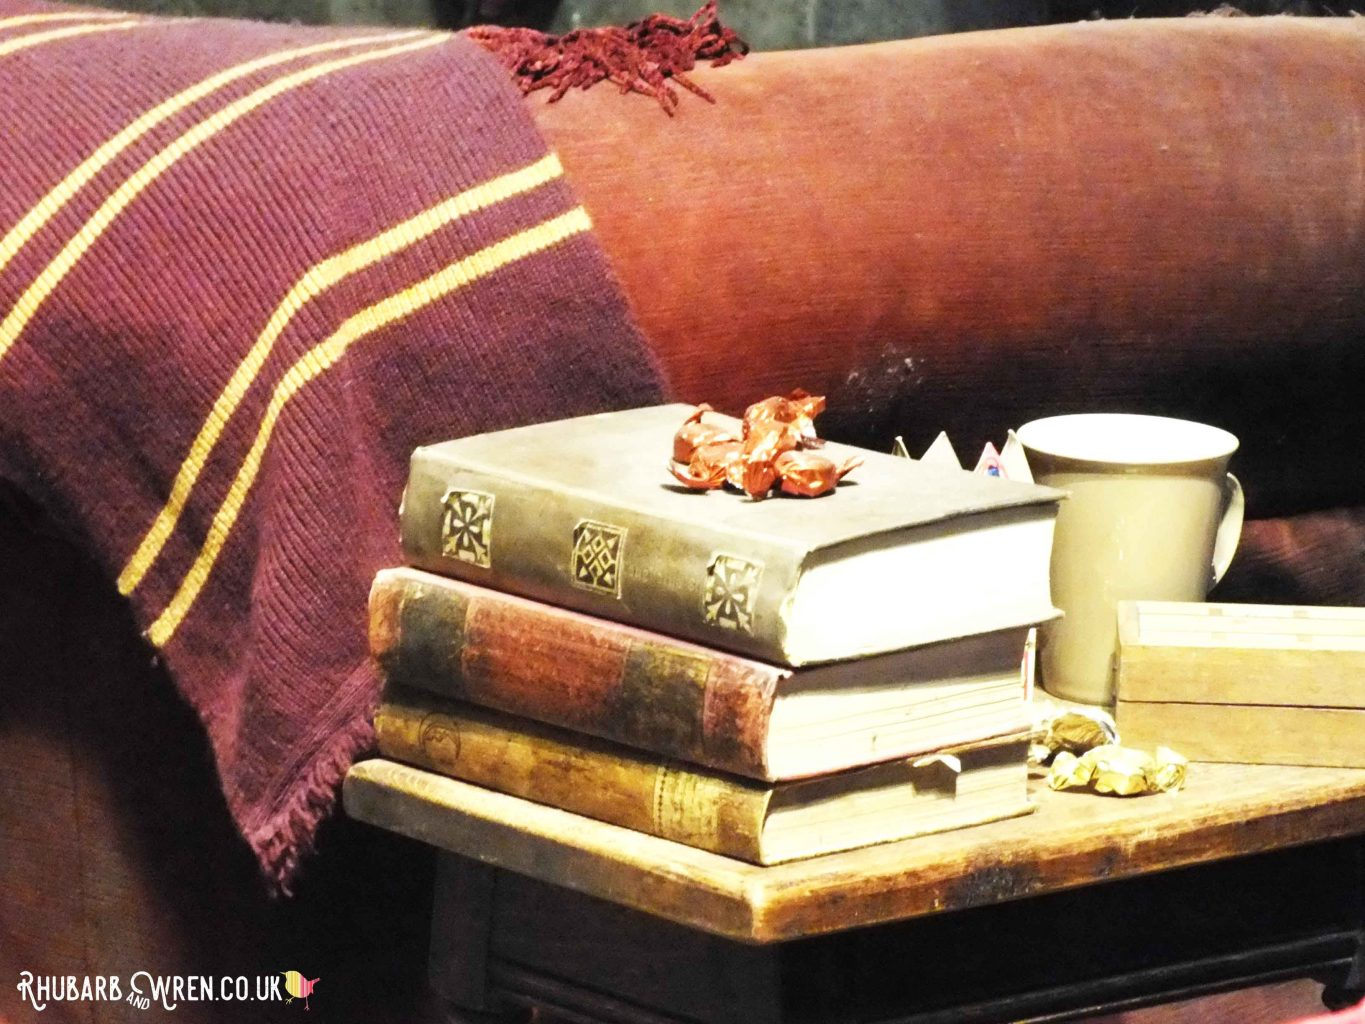 The Gryffindor common room set at the Harry Potter studio tour, UK